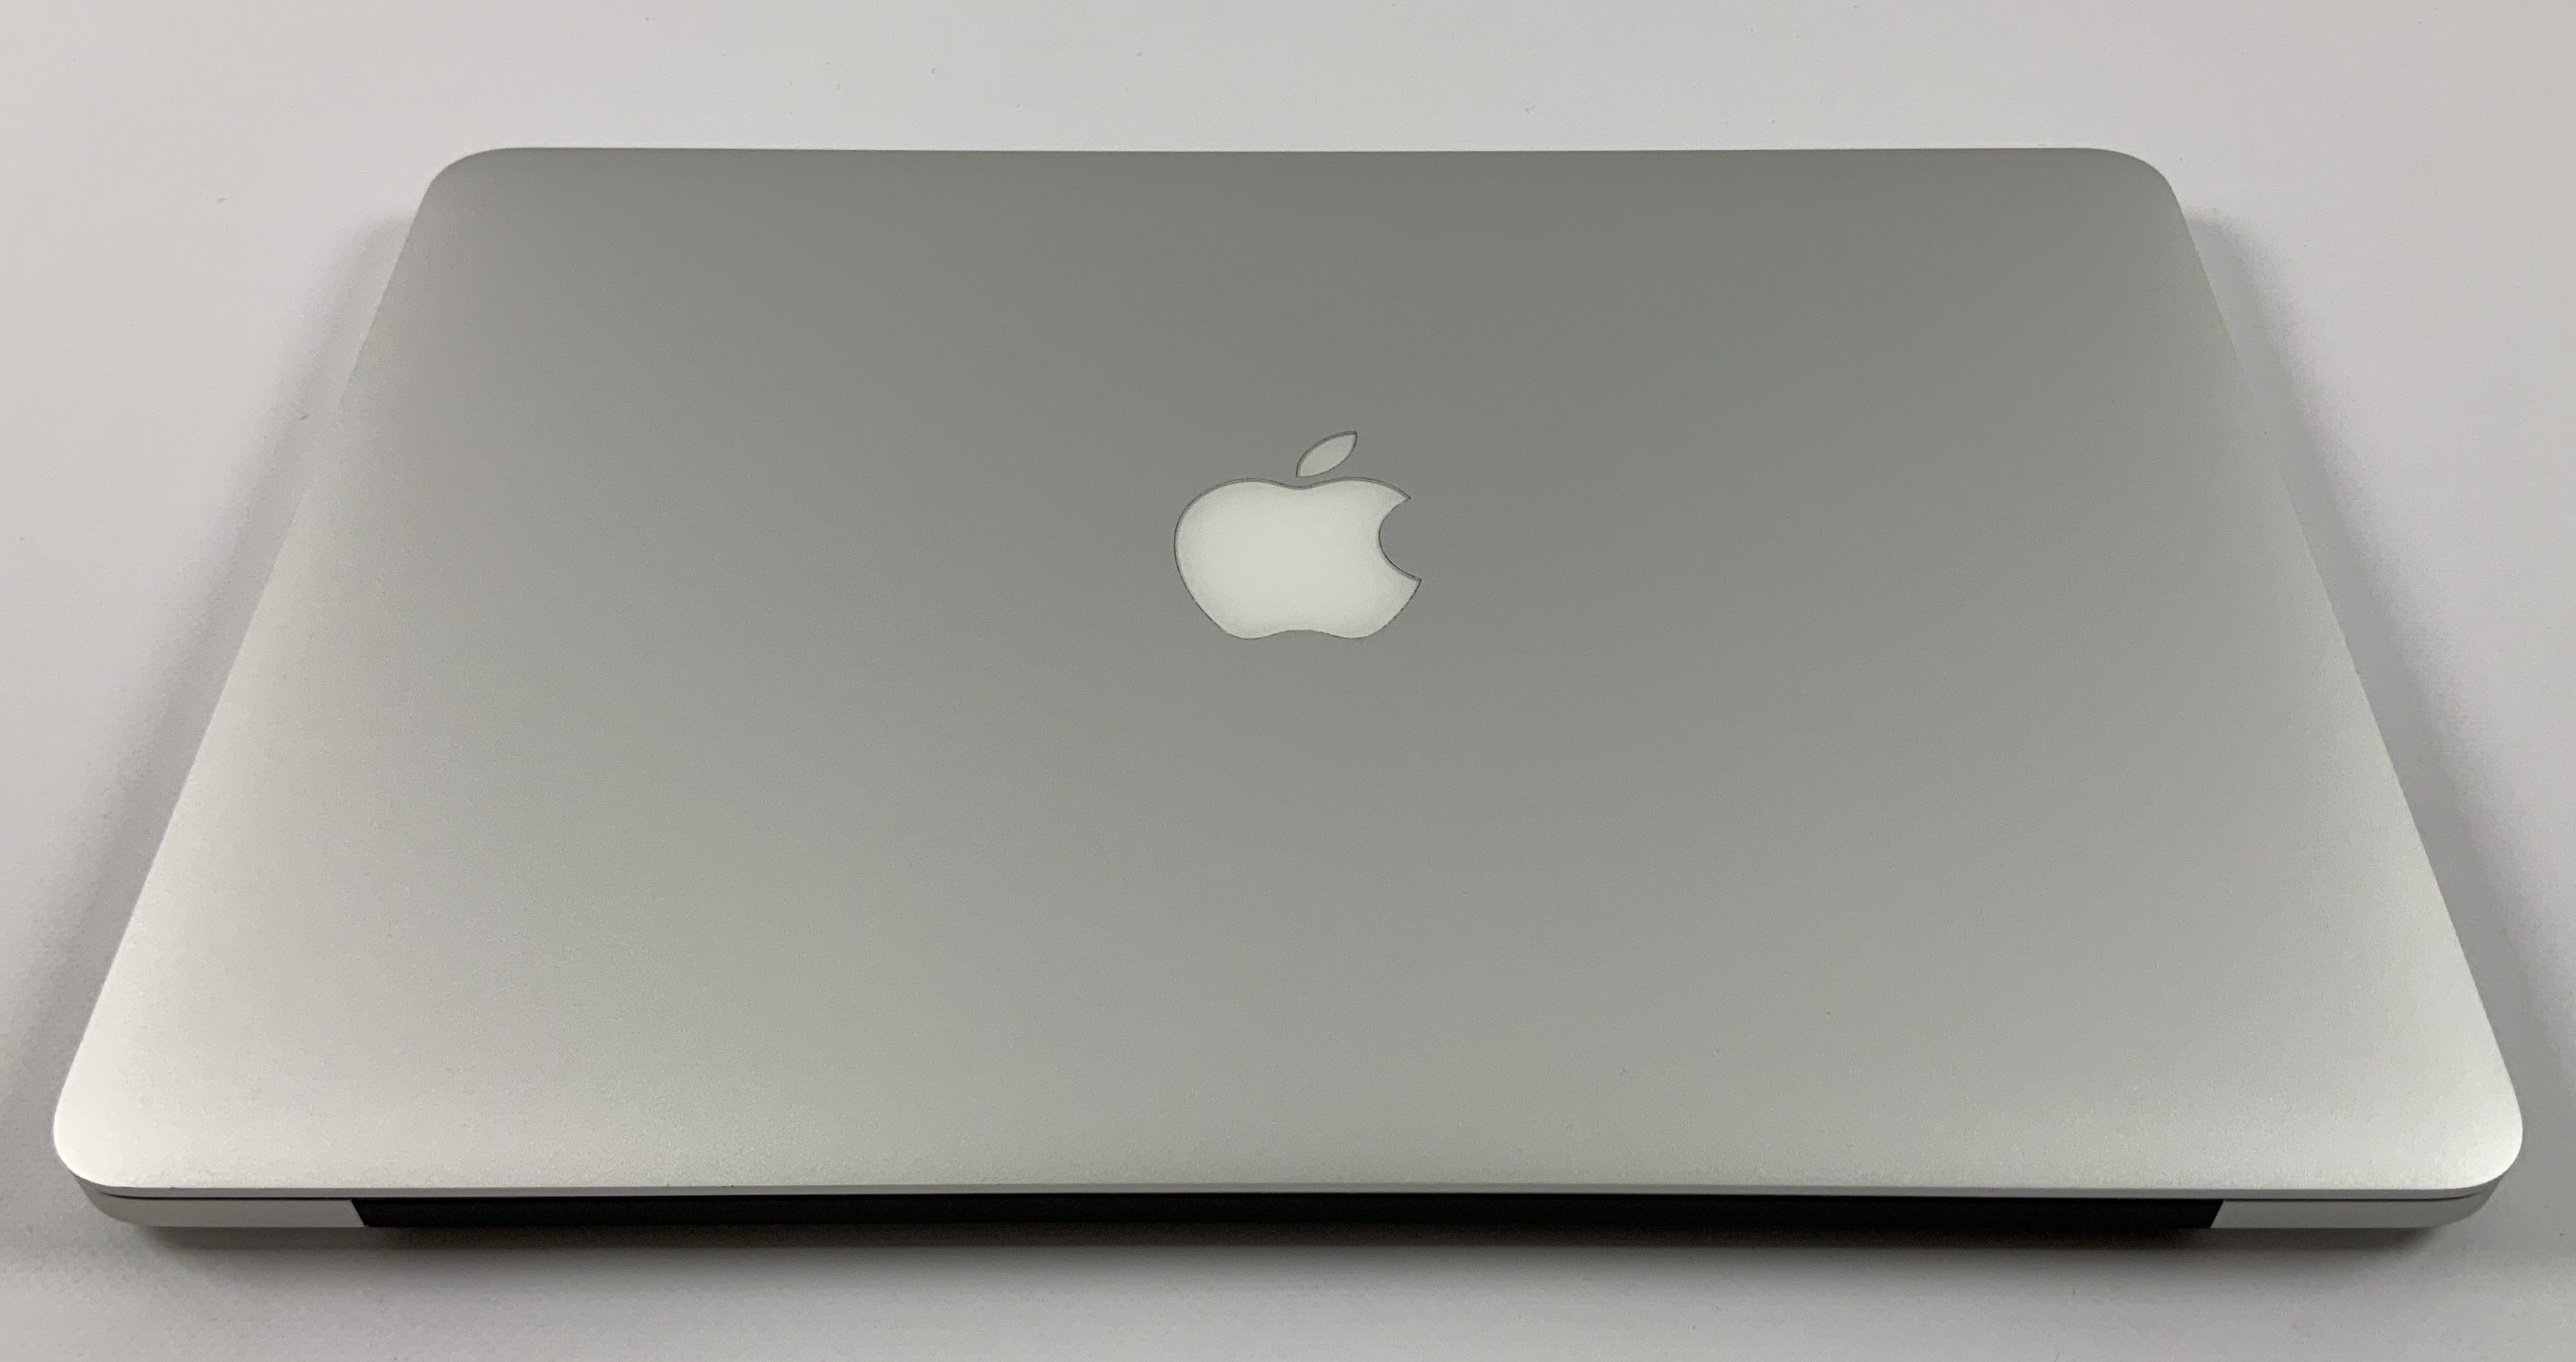 "MacBook Pro Retina 13"" Mid 2014 (Intel Core i5 2.6 GHz 8 GB RAM 128 GB SSD), Intel Core i5 2.6 GHz, 8 GB RAM, 128 GB SSD, bild 2"